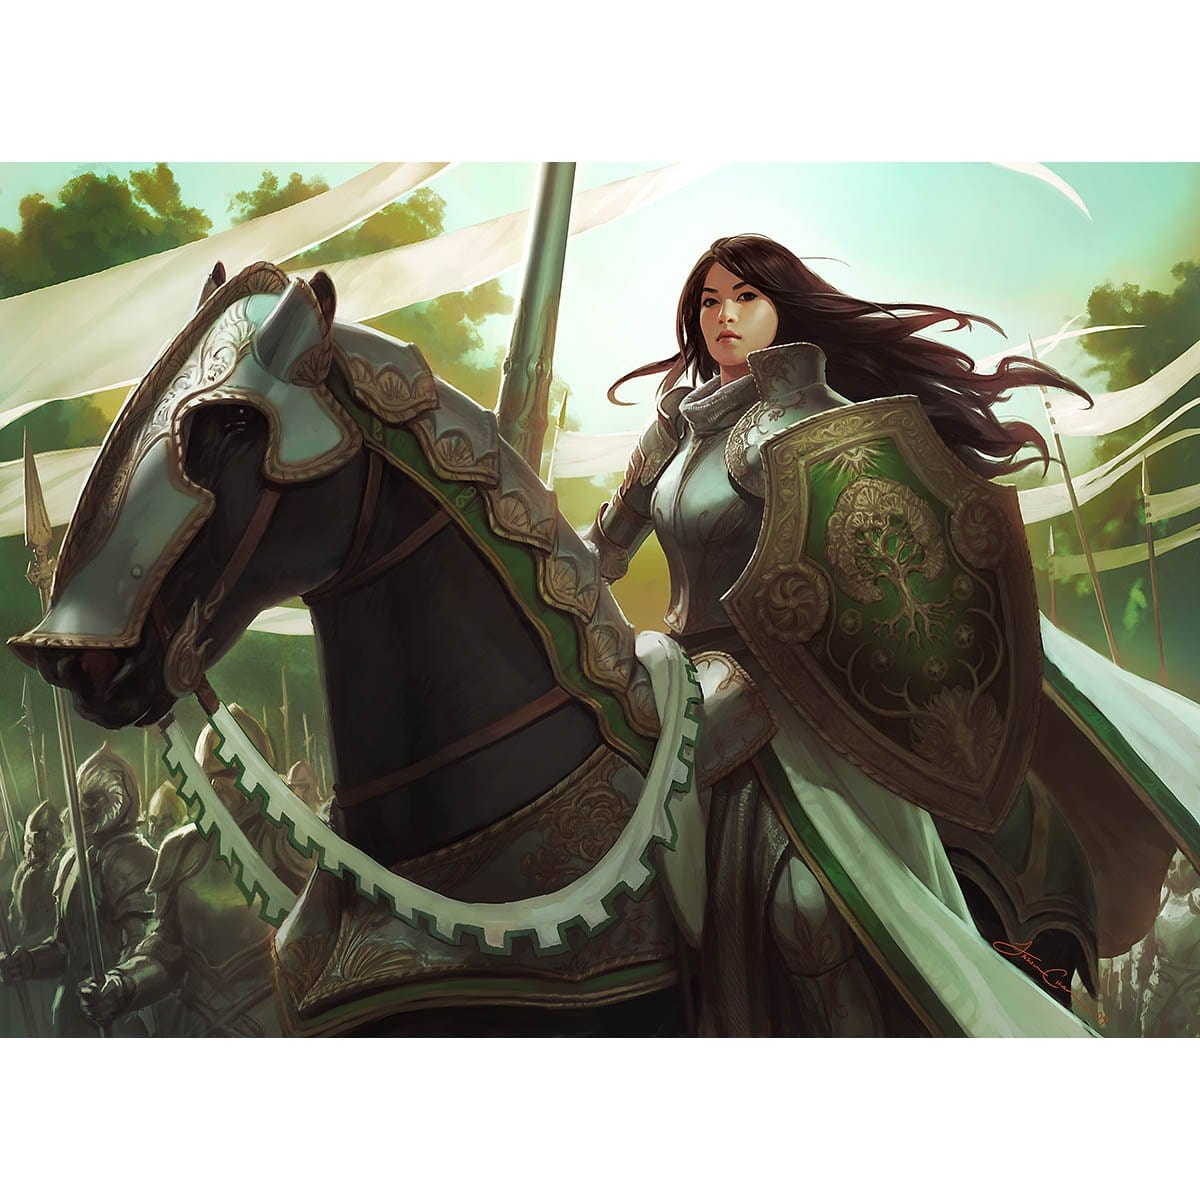 Knight Exemplar Print - Print - Original Magic Art - Accessories for Magic the Gathering and other card games